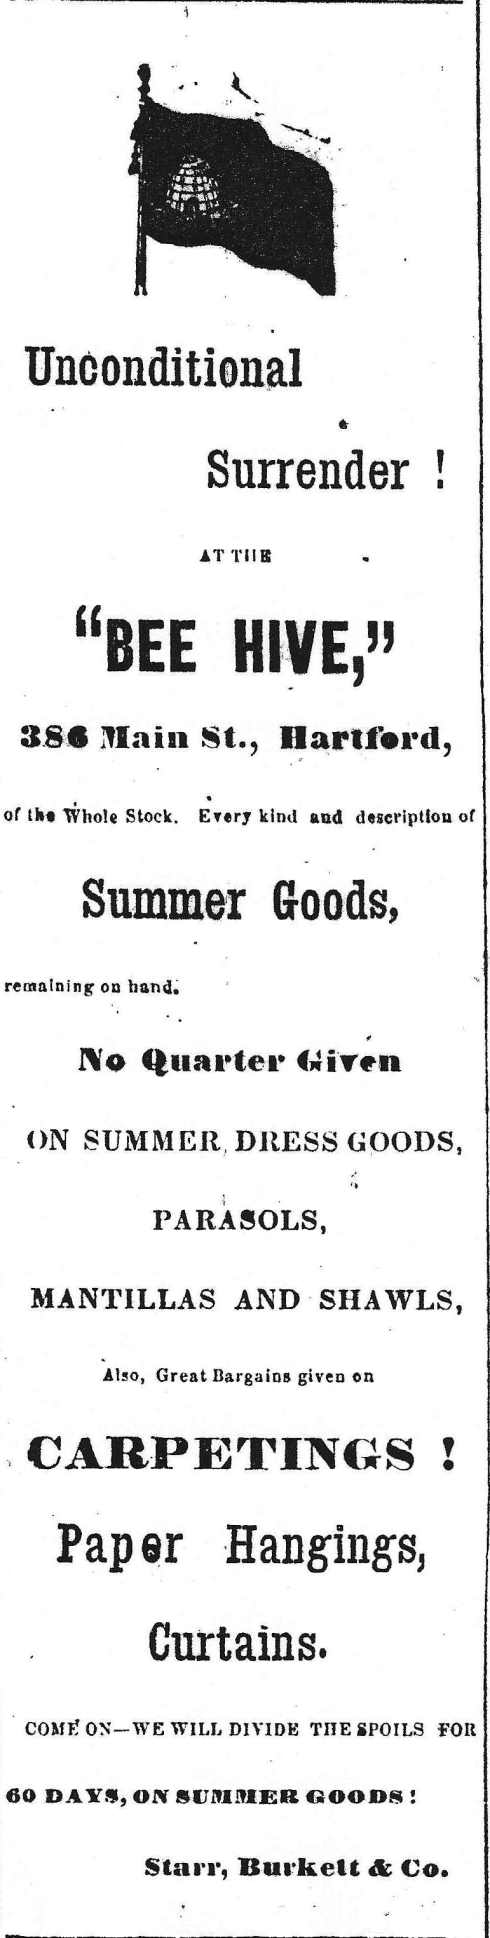 Ad for the Bee Hive, of Hartford